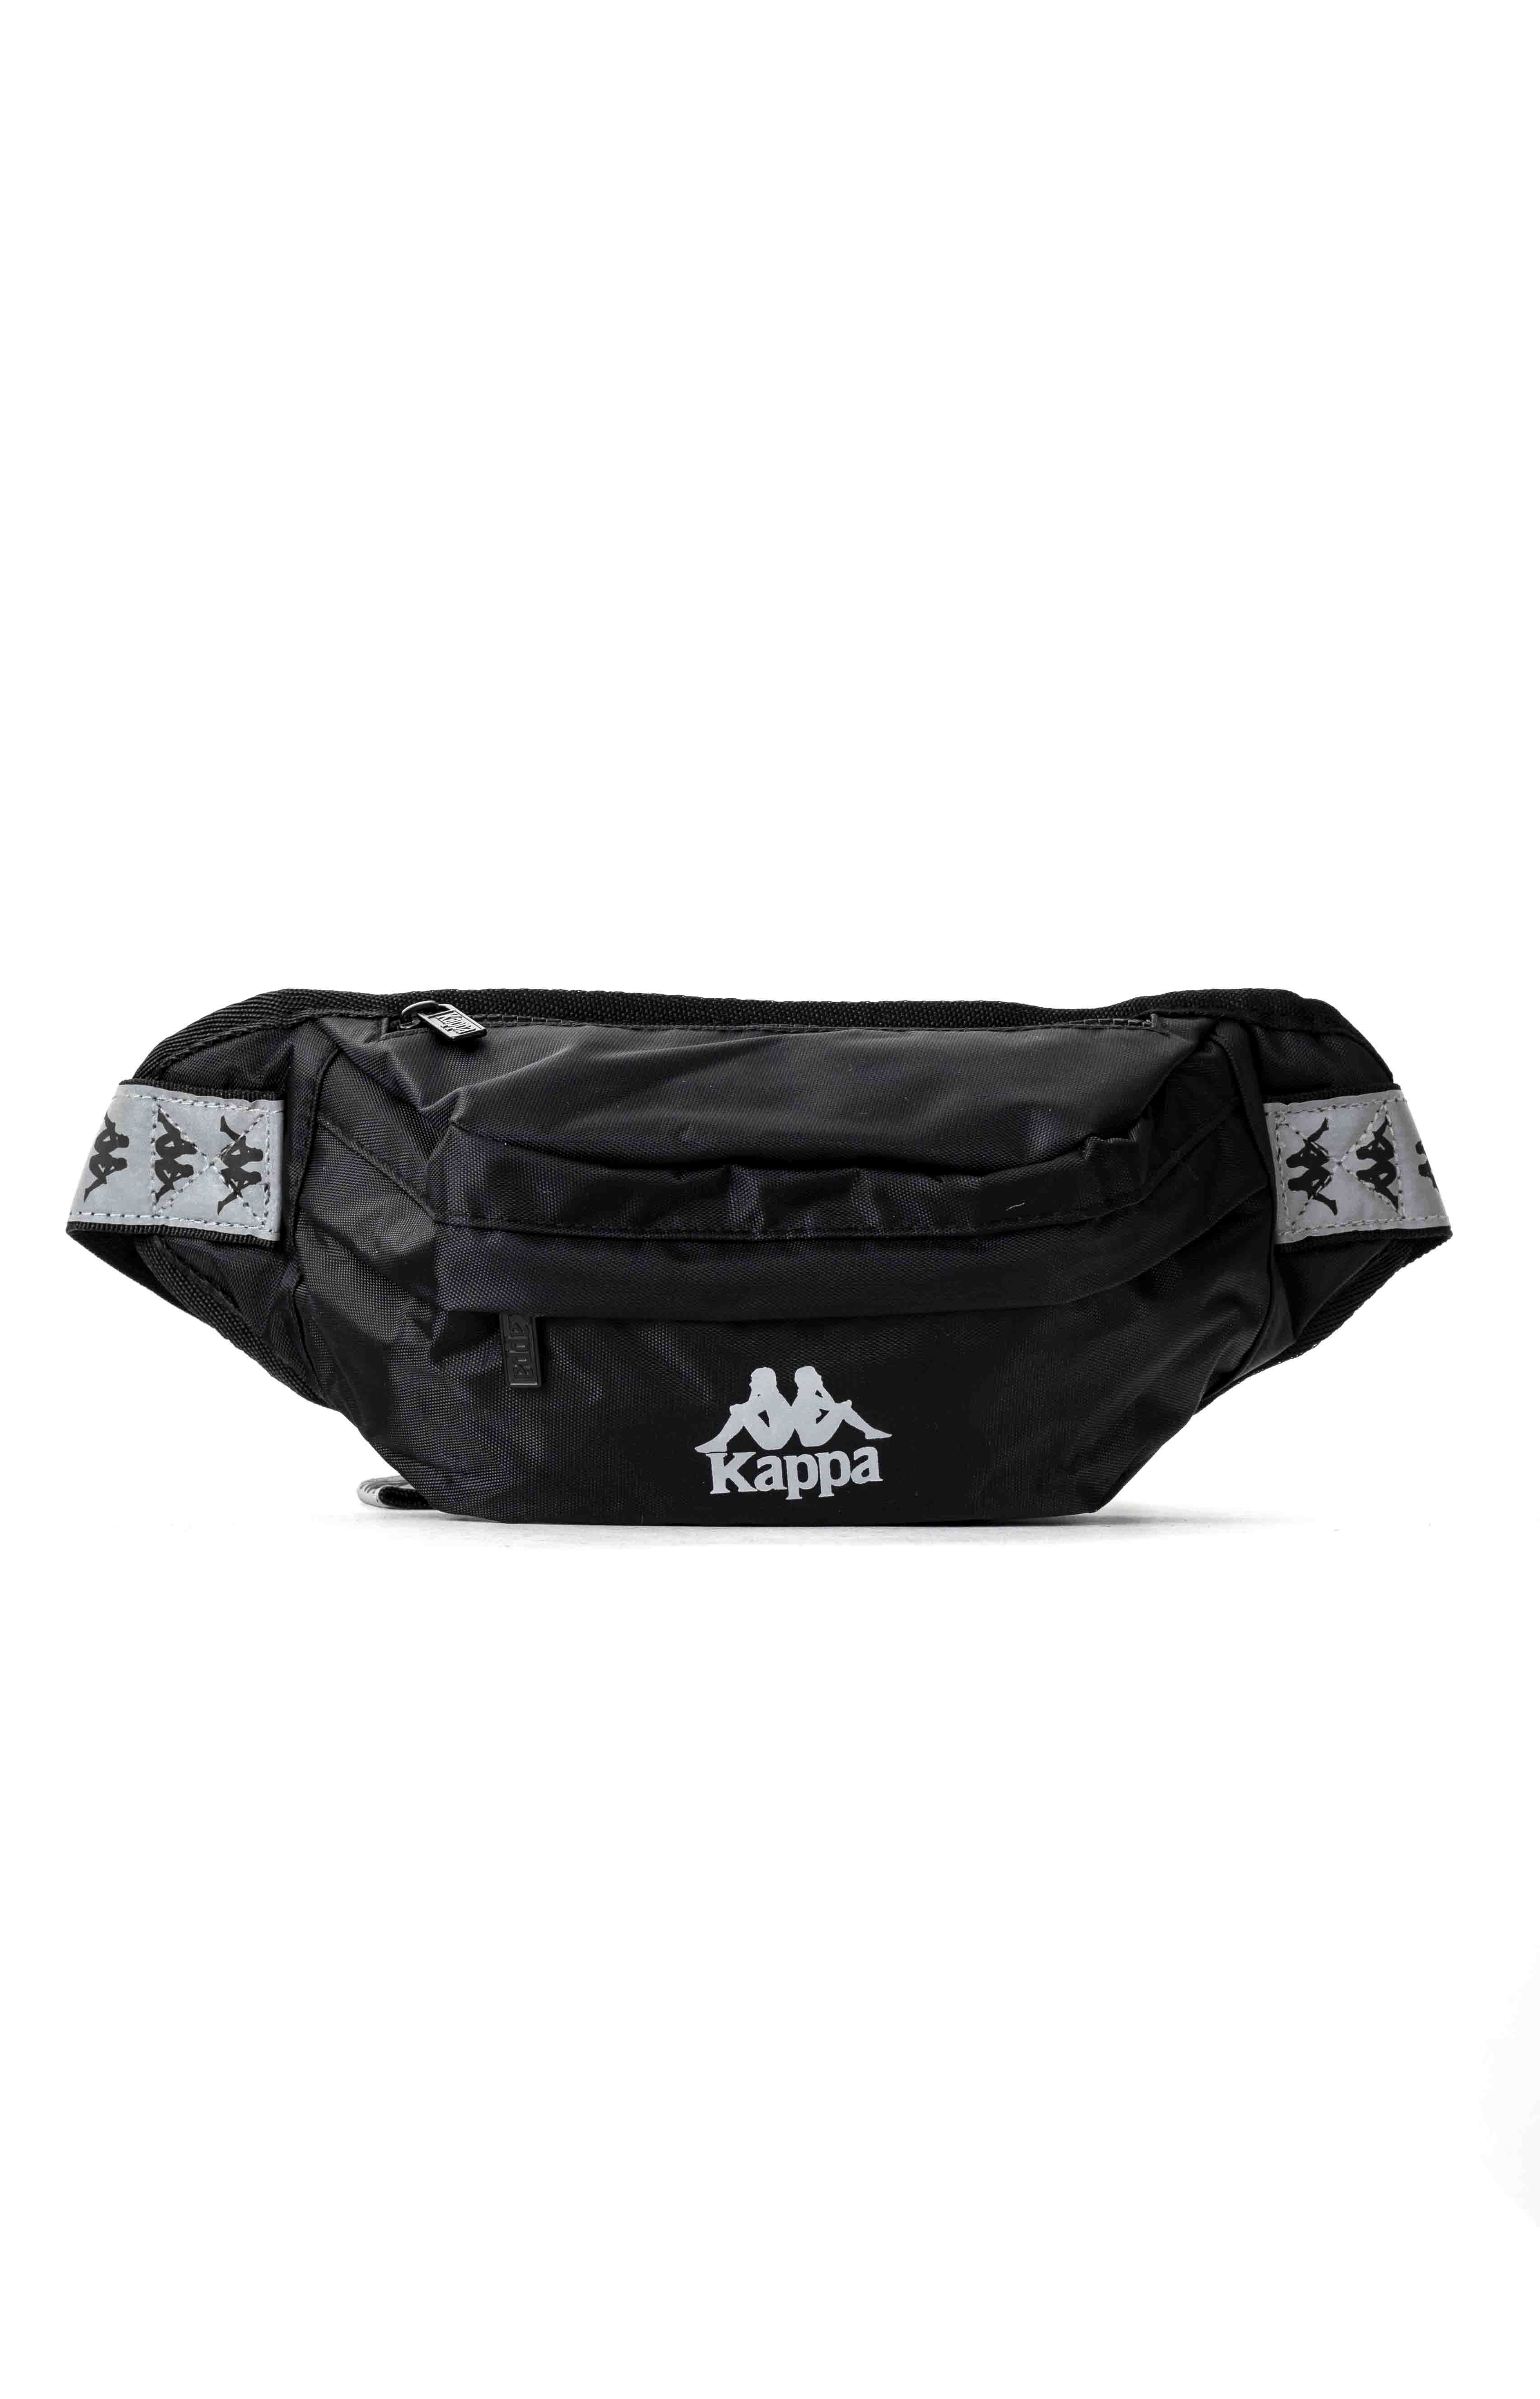 222 Banda Dante Danky Bag - Black/Grey